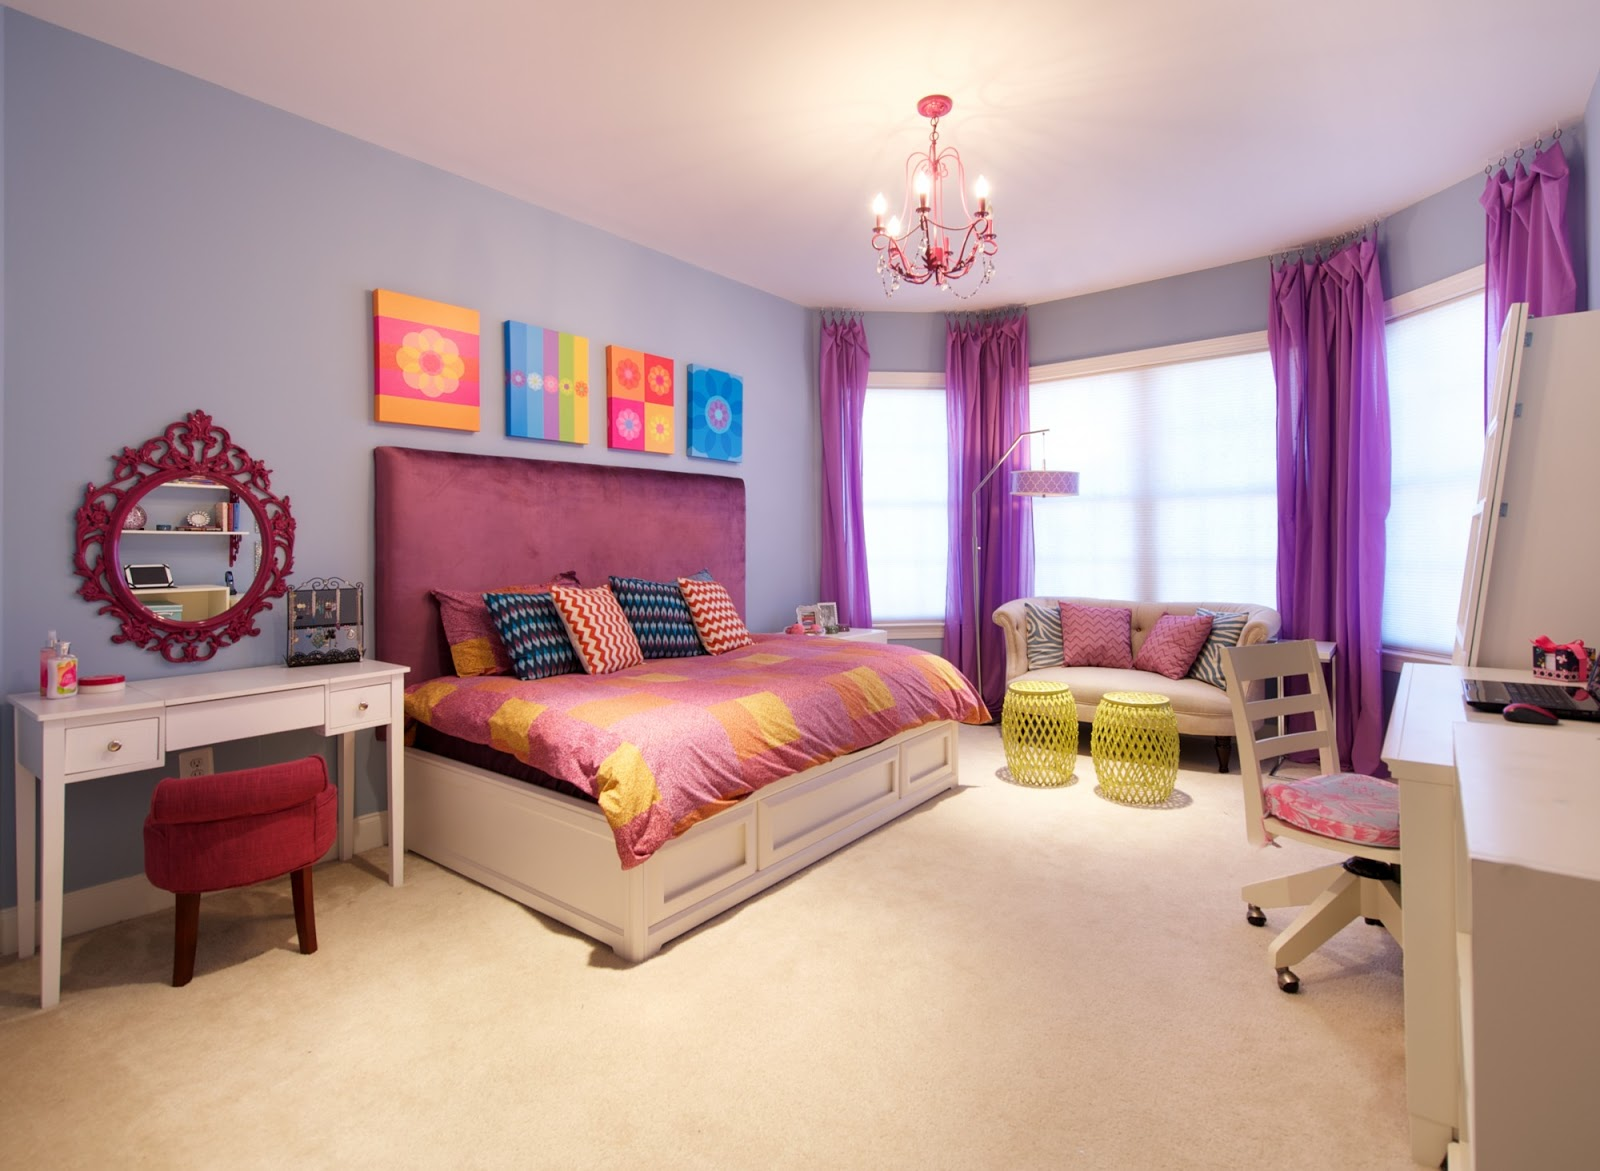 Funky colorful haven for a tween girl from olamar interiors home design trends interior - Tween room decorating ideas ...